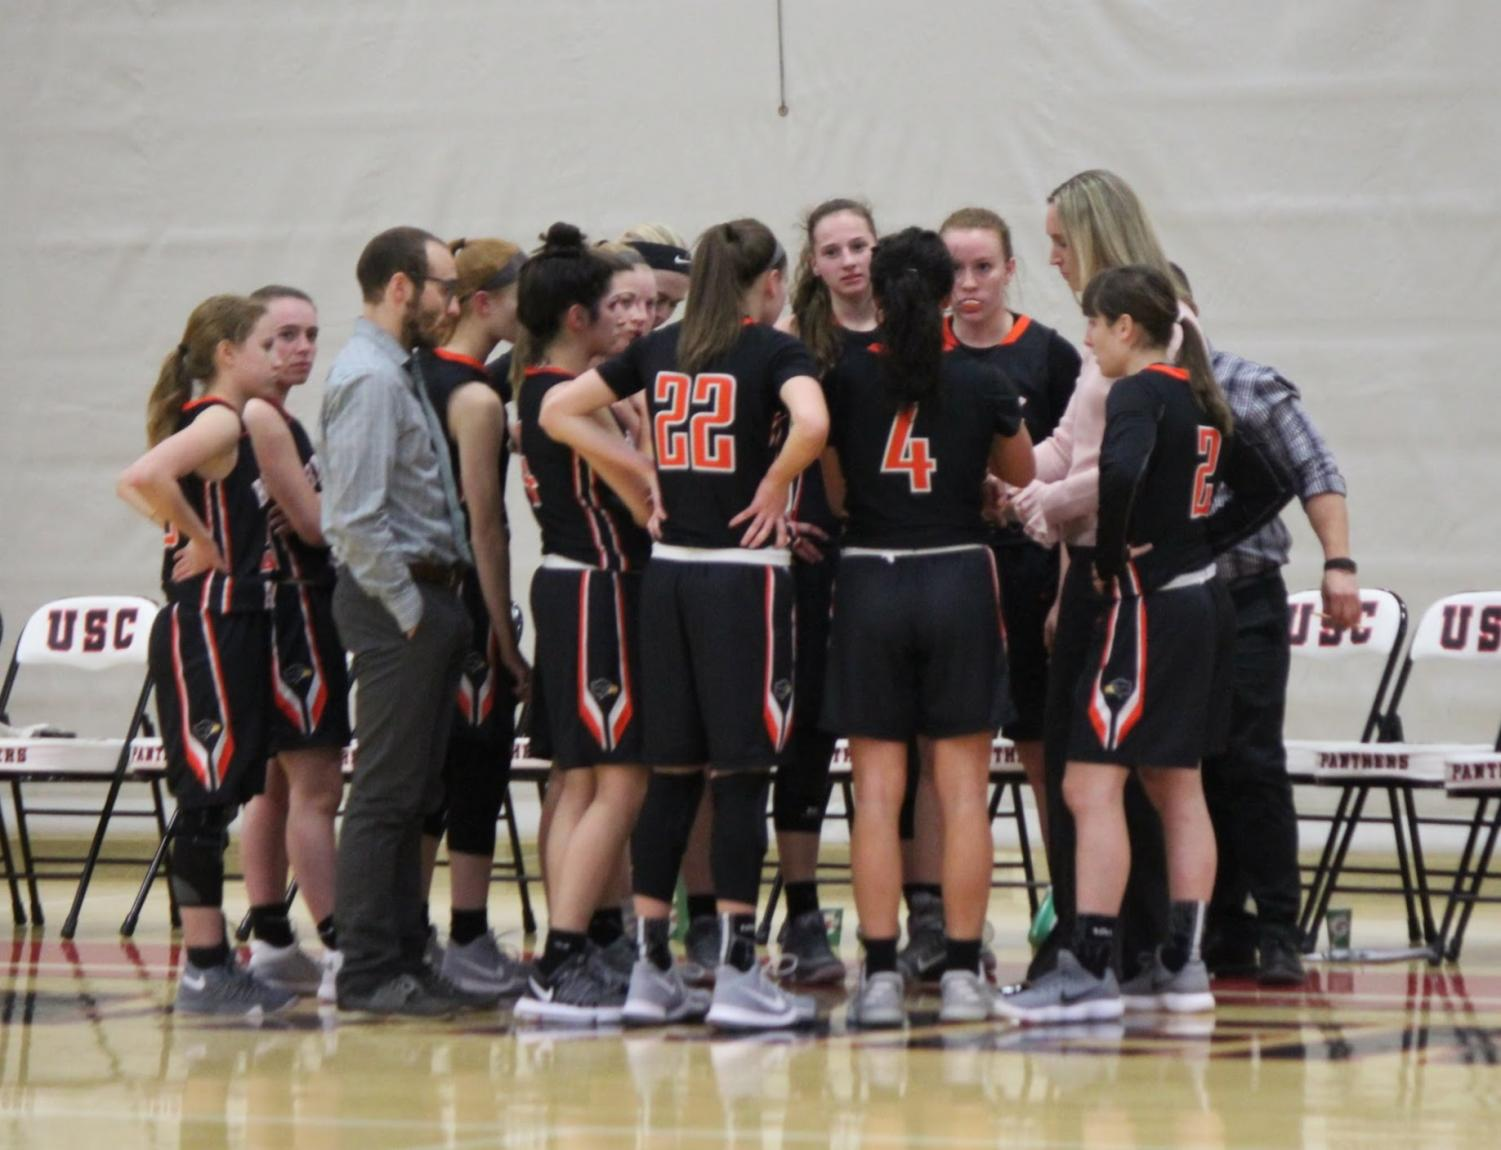 Lady Hawks huddle up during their game vs. USC on Thursday, Jan. 4.